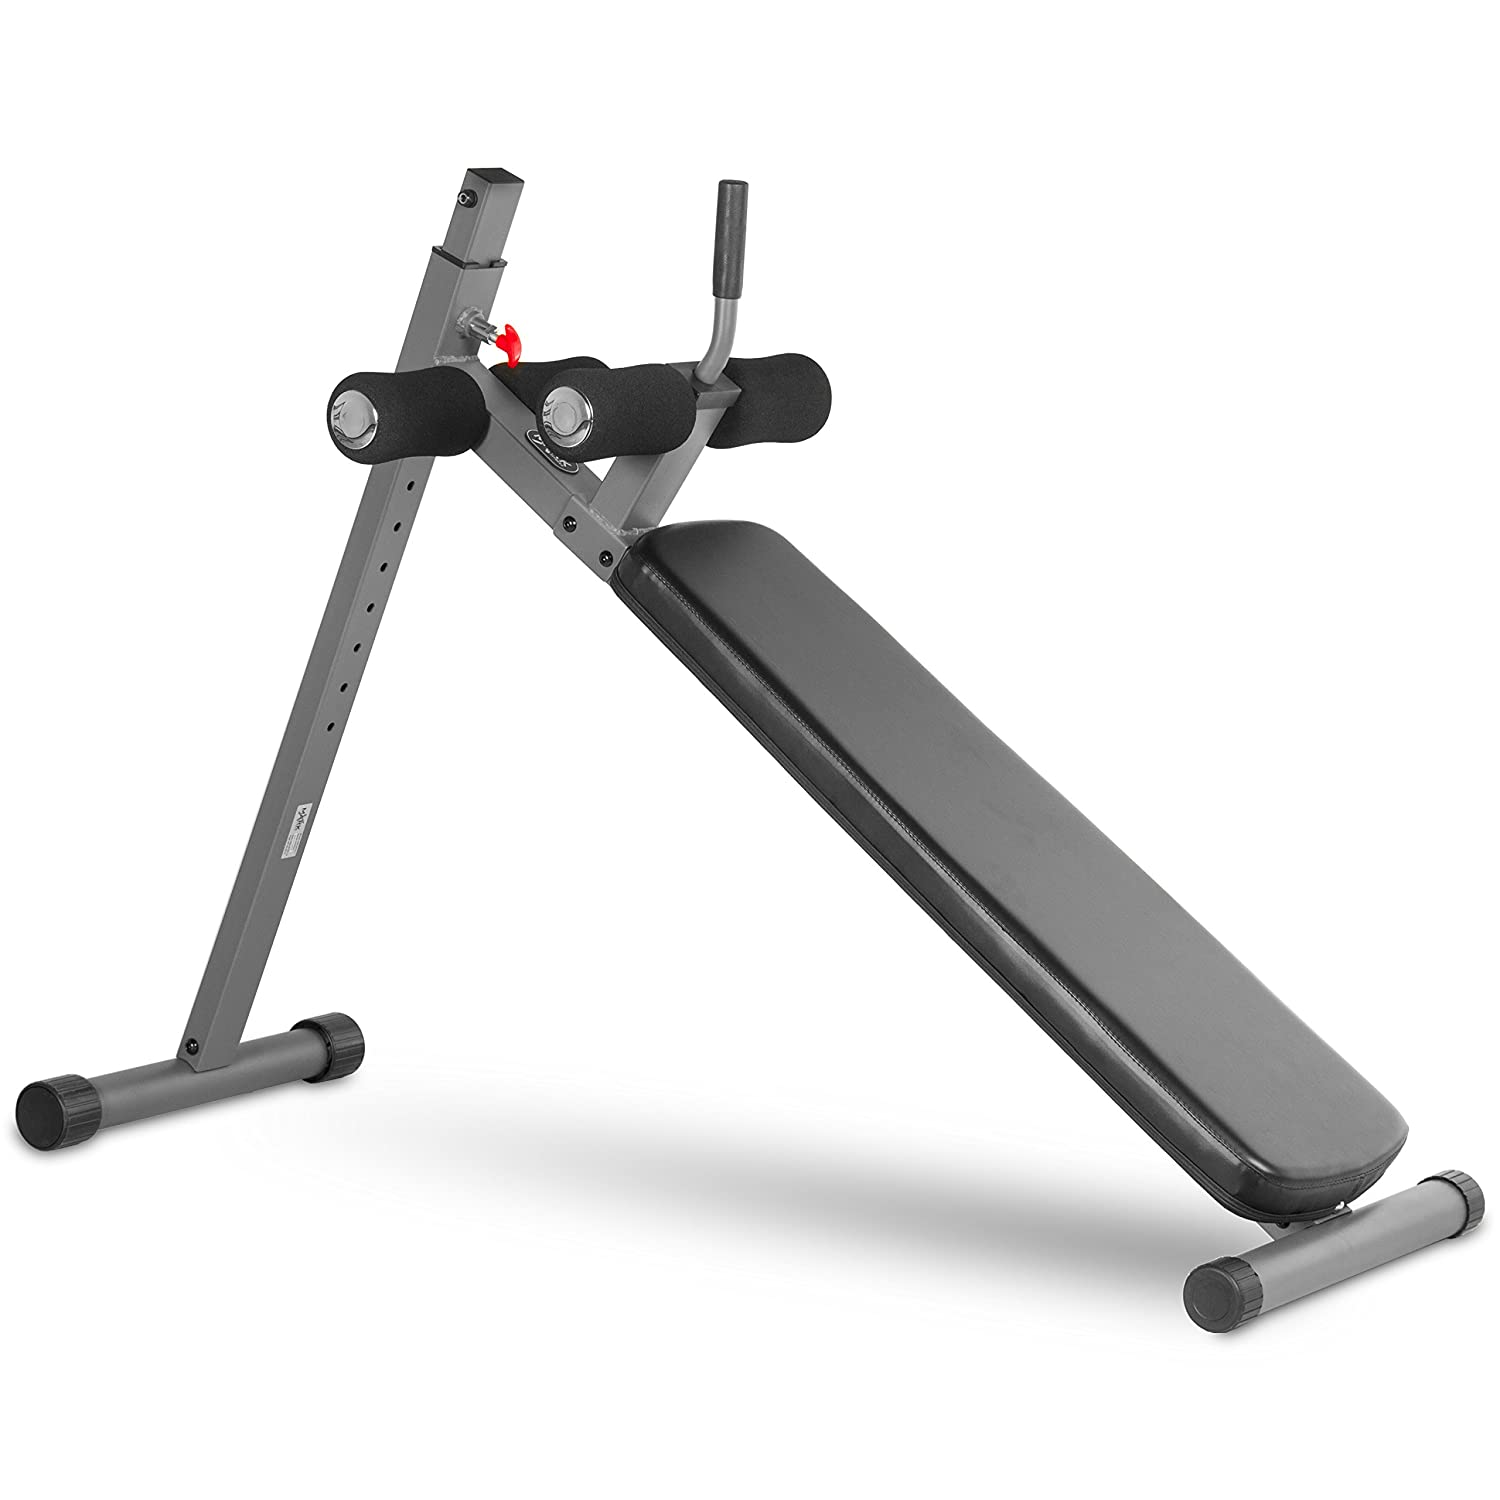 12 Position Adjustable Bench